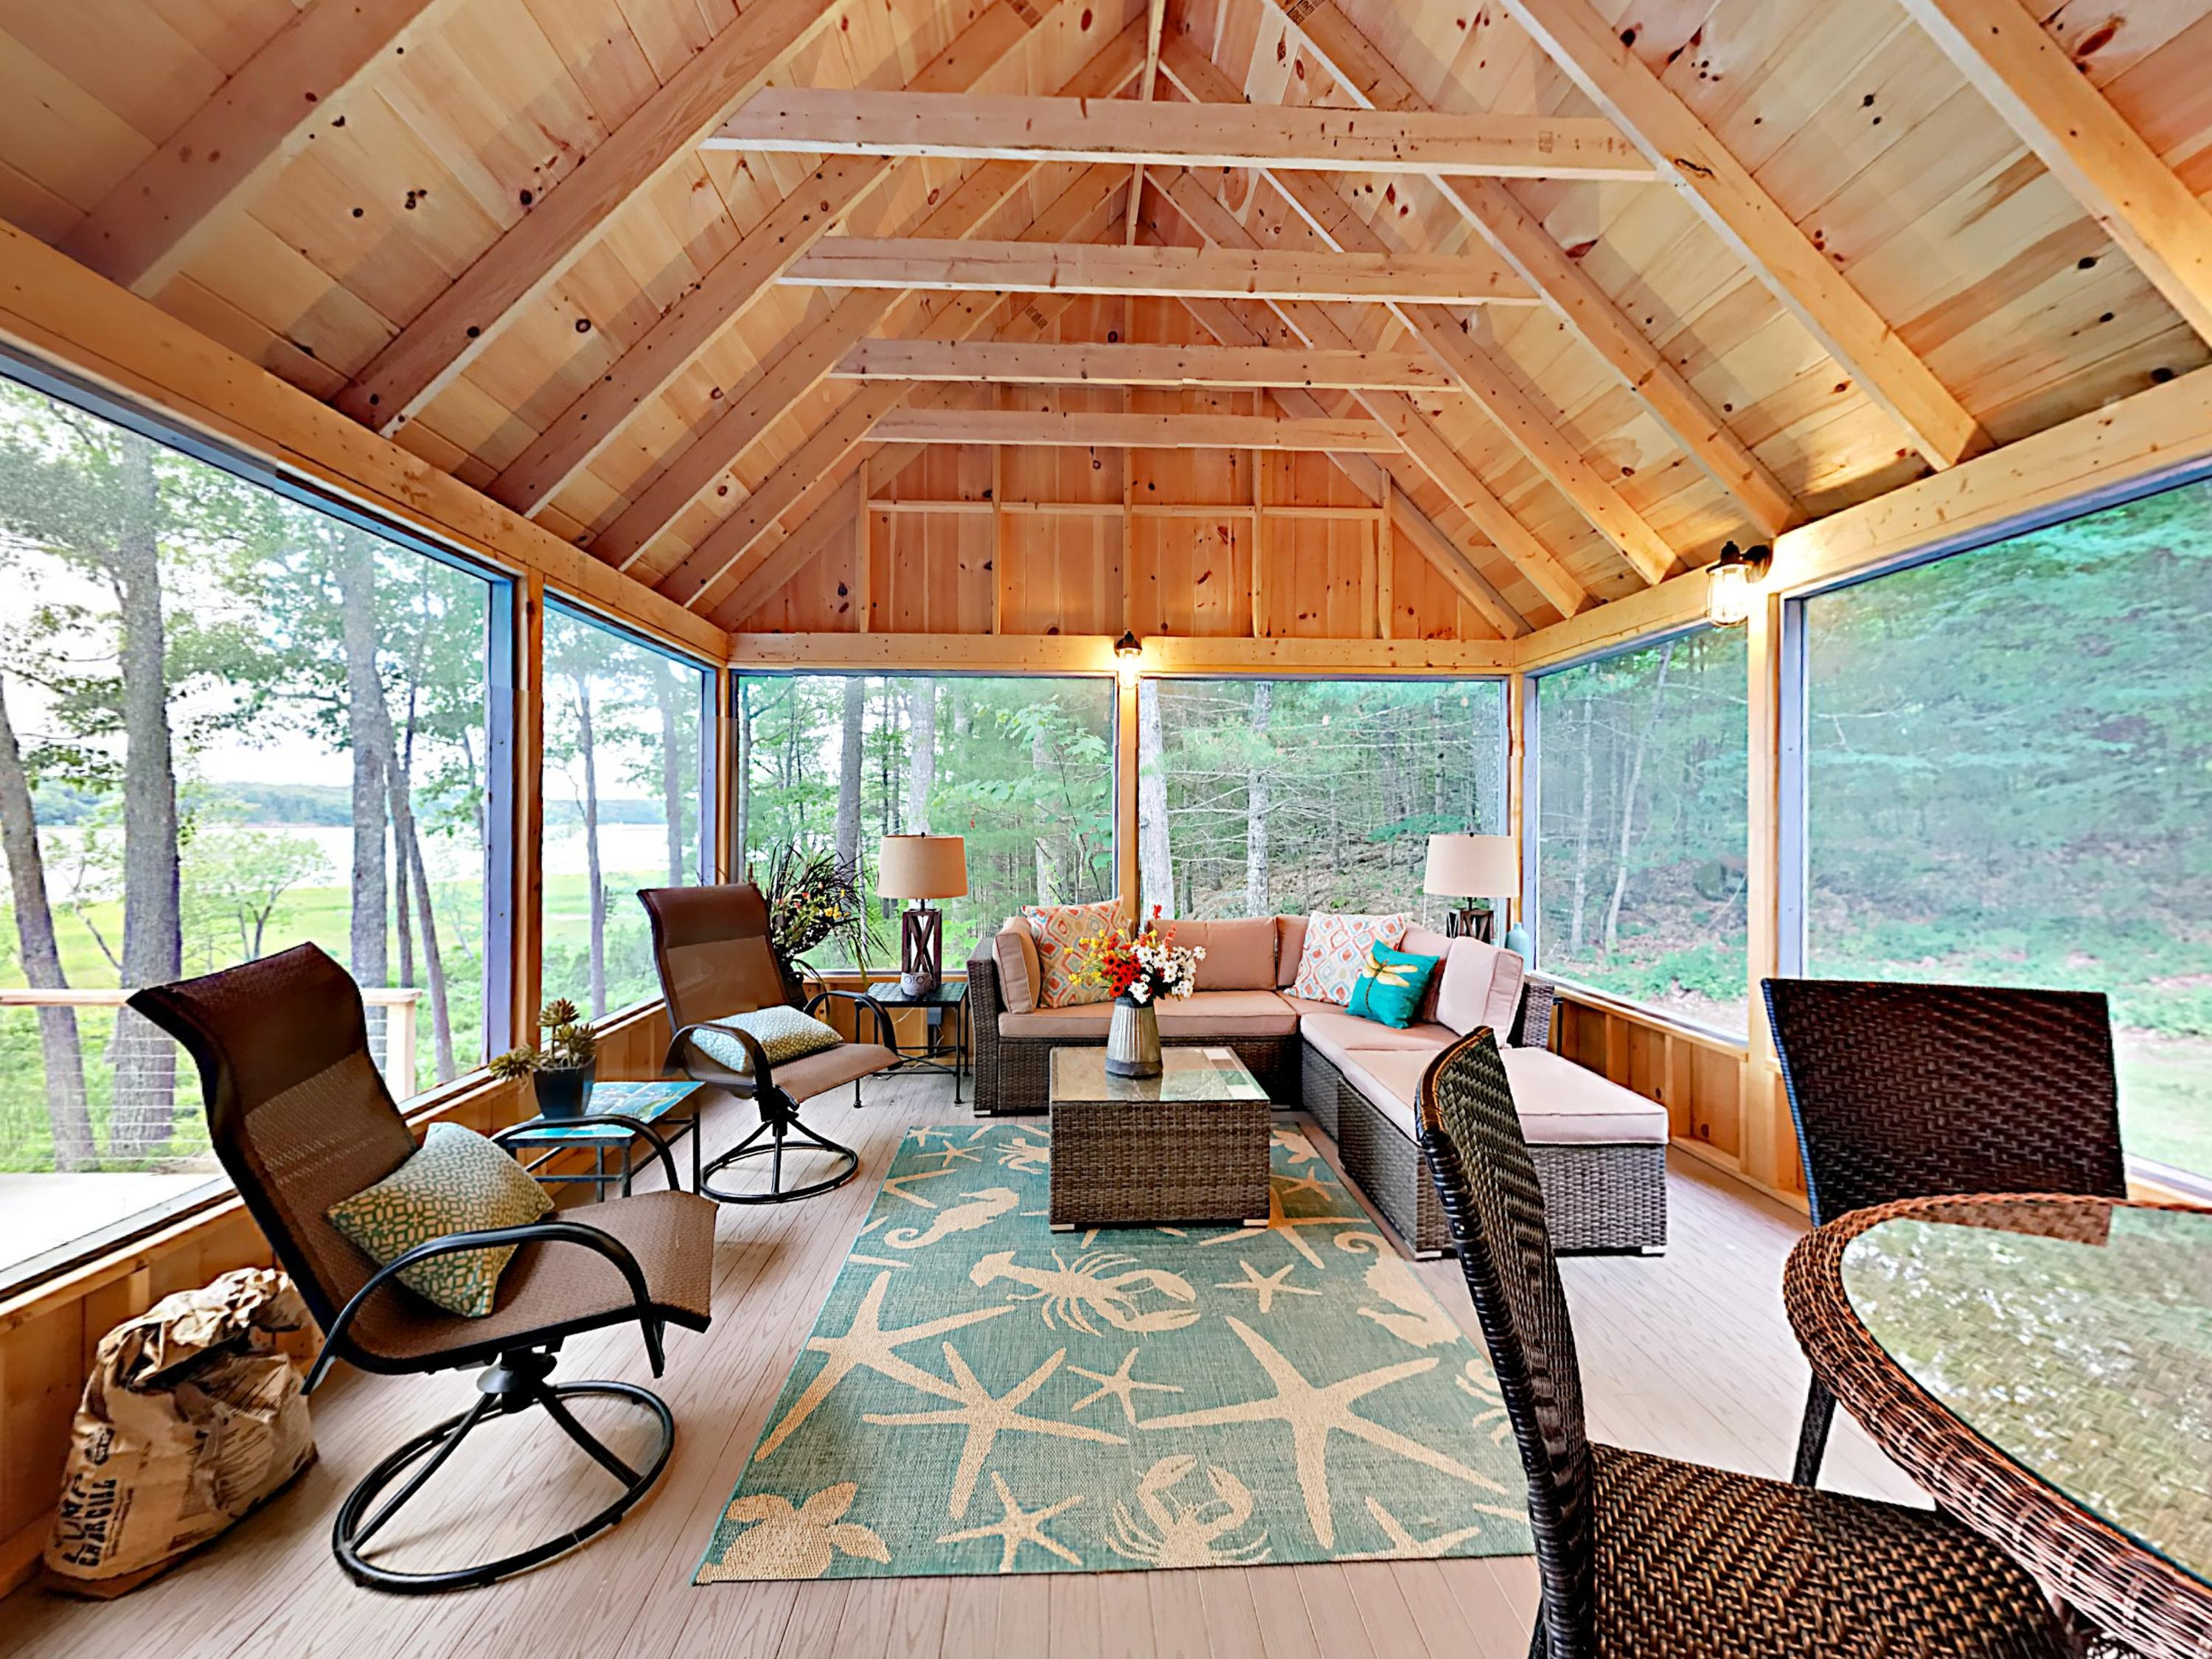 Lounge or enjoy dinner in the screened-in porch.